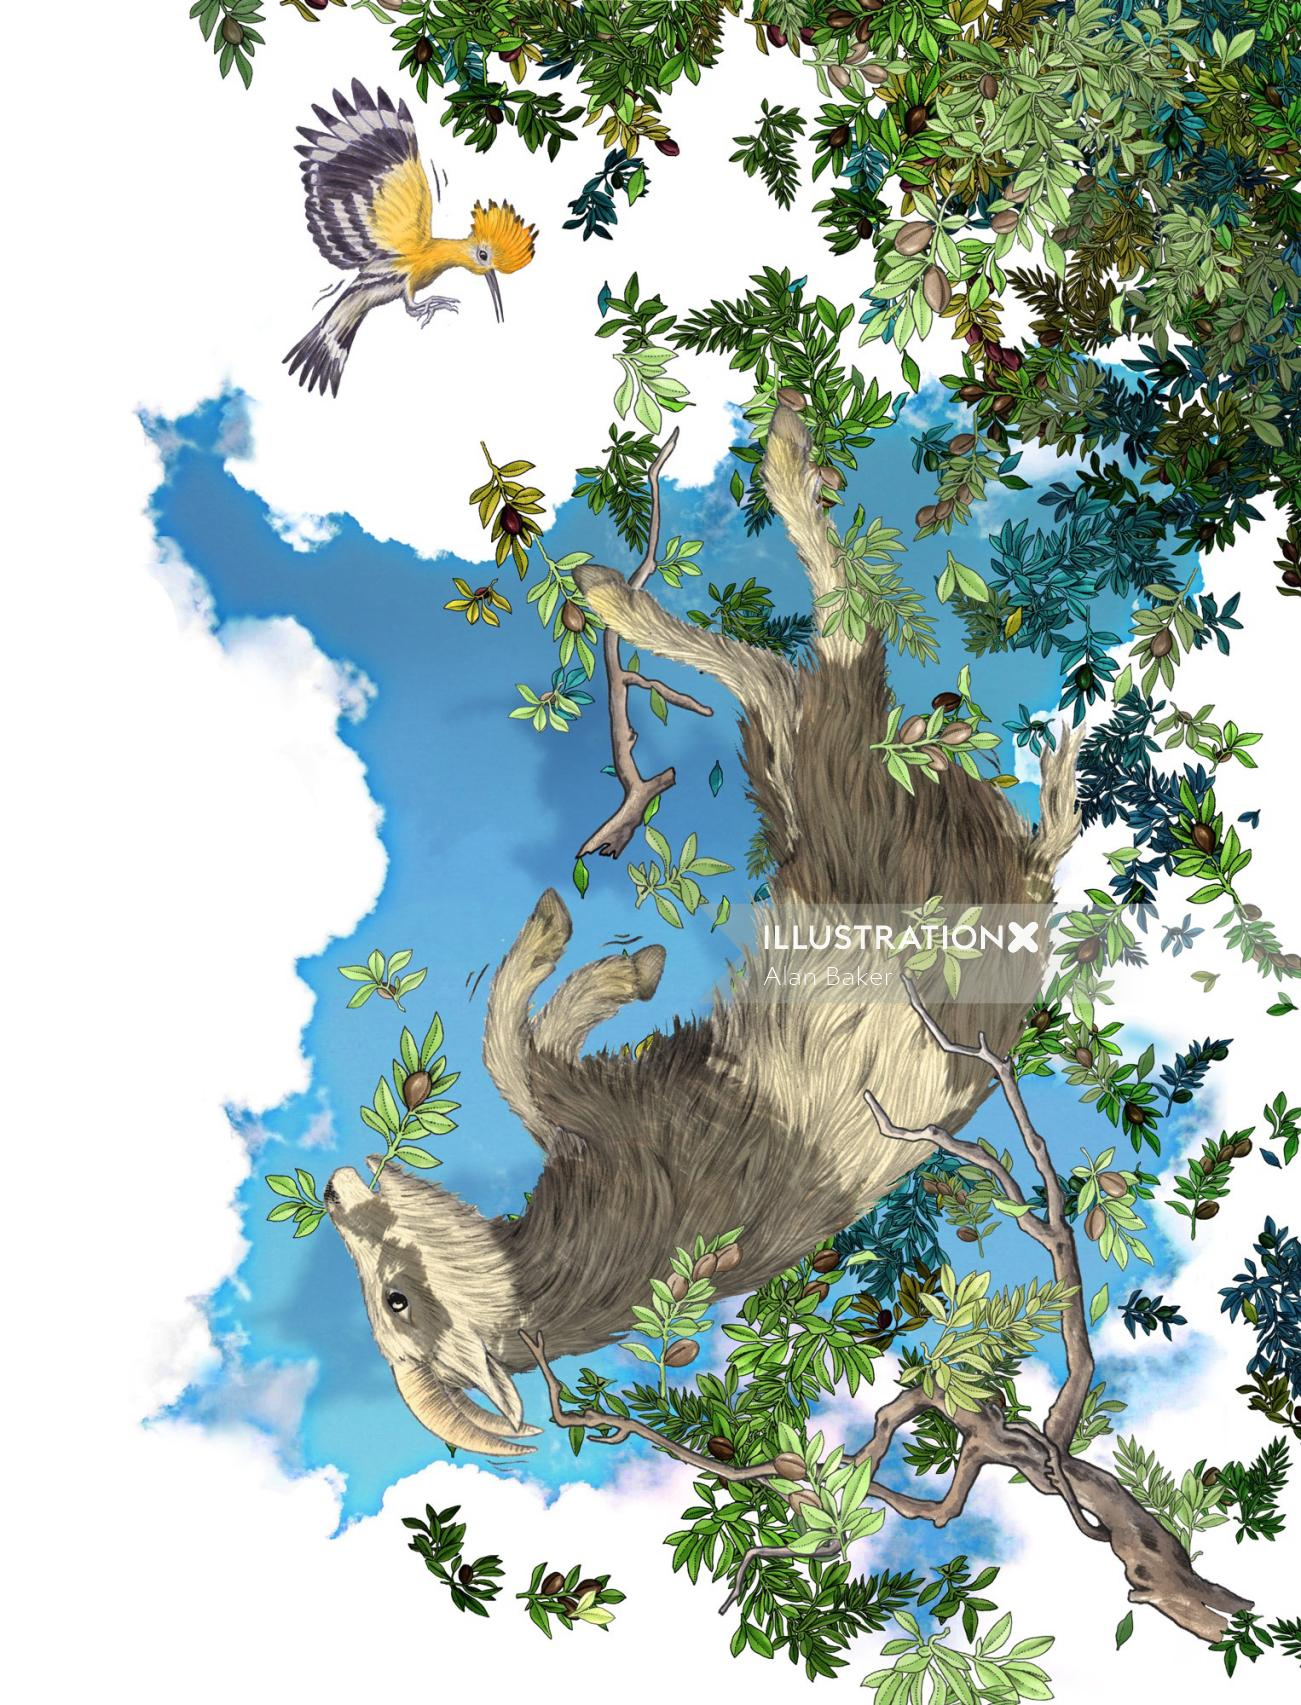 Goat falling from tree illustration by Alan Baker